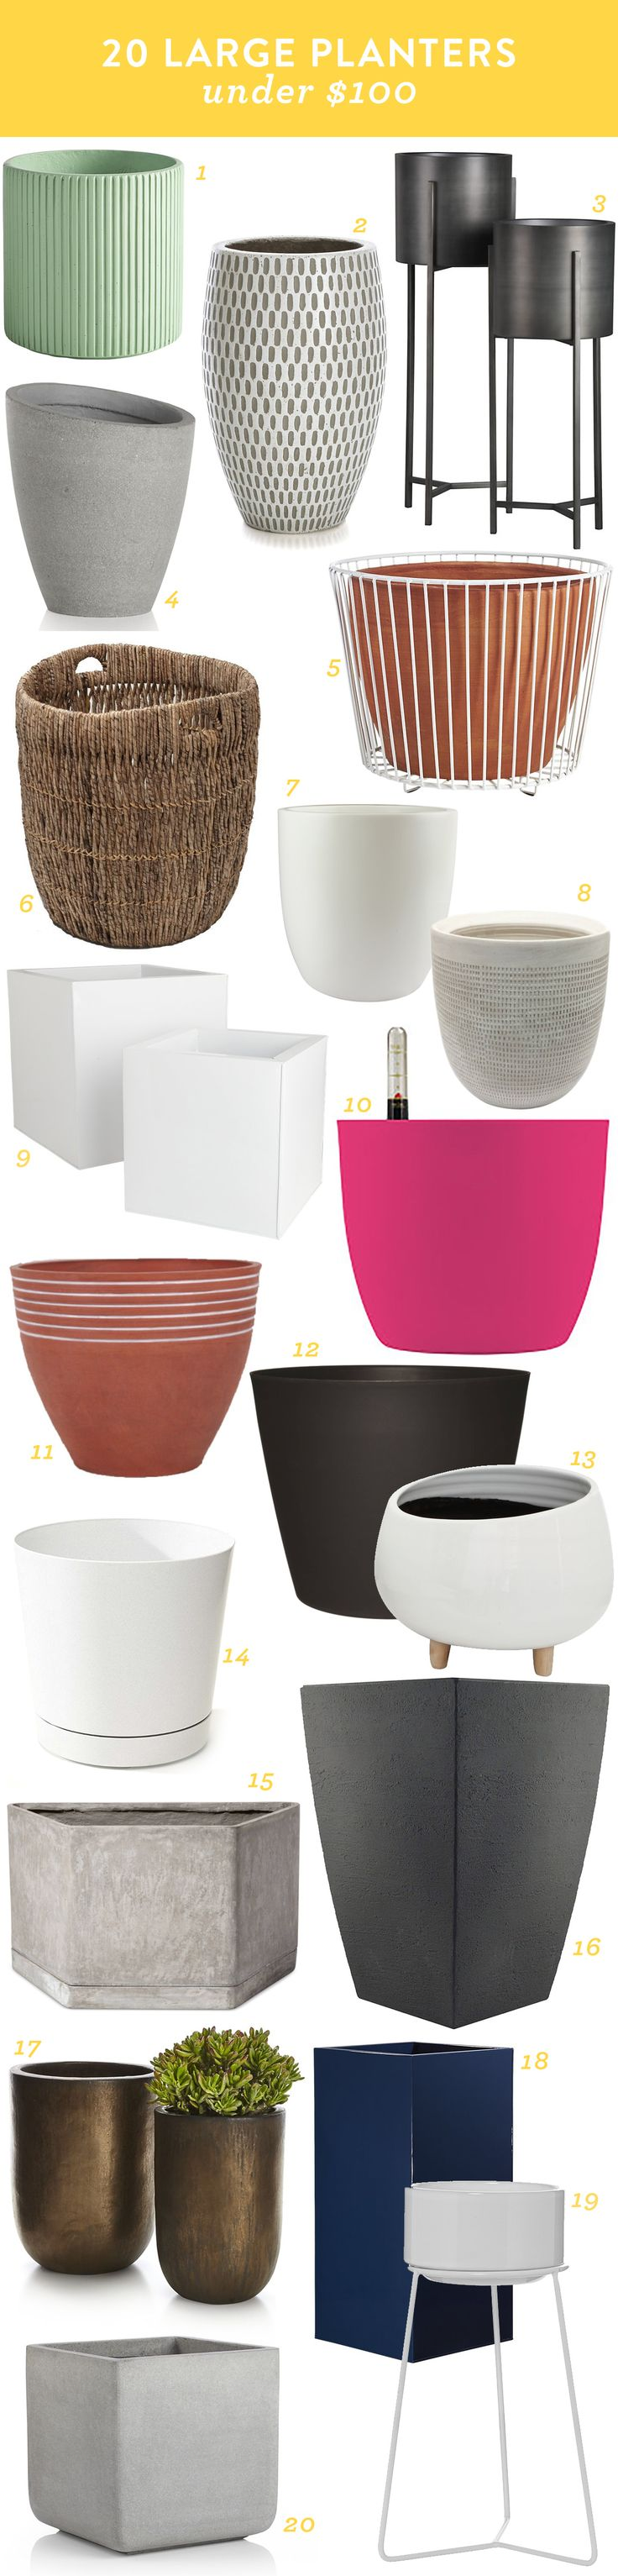 Add plants to your indoor and outdoor spaces! Check out this roundup of 20 great large planters all less than $100!